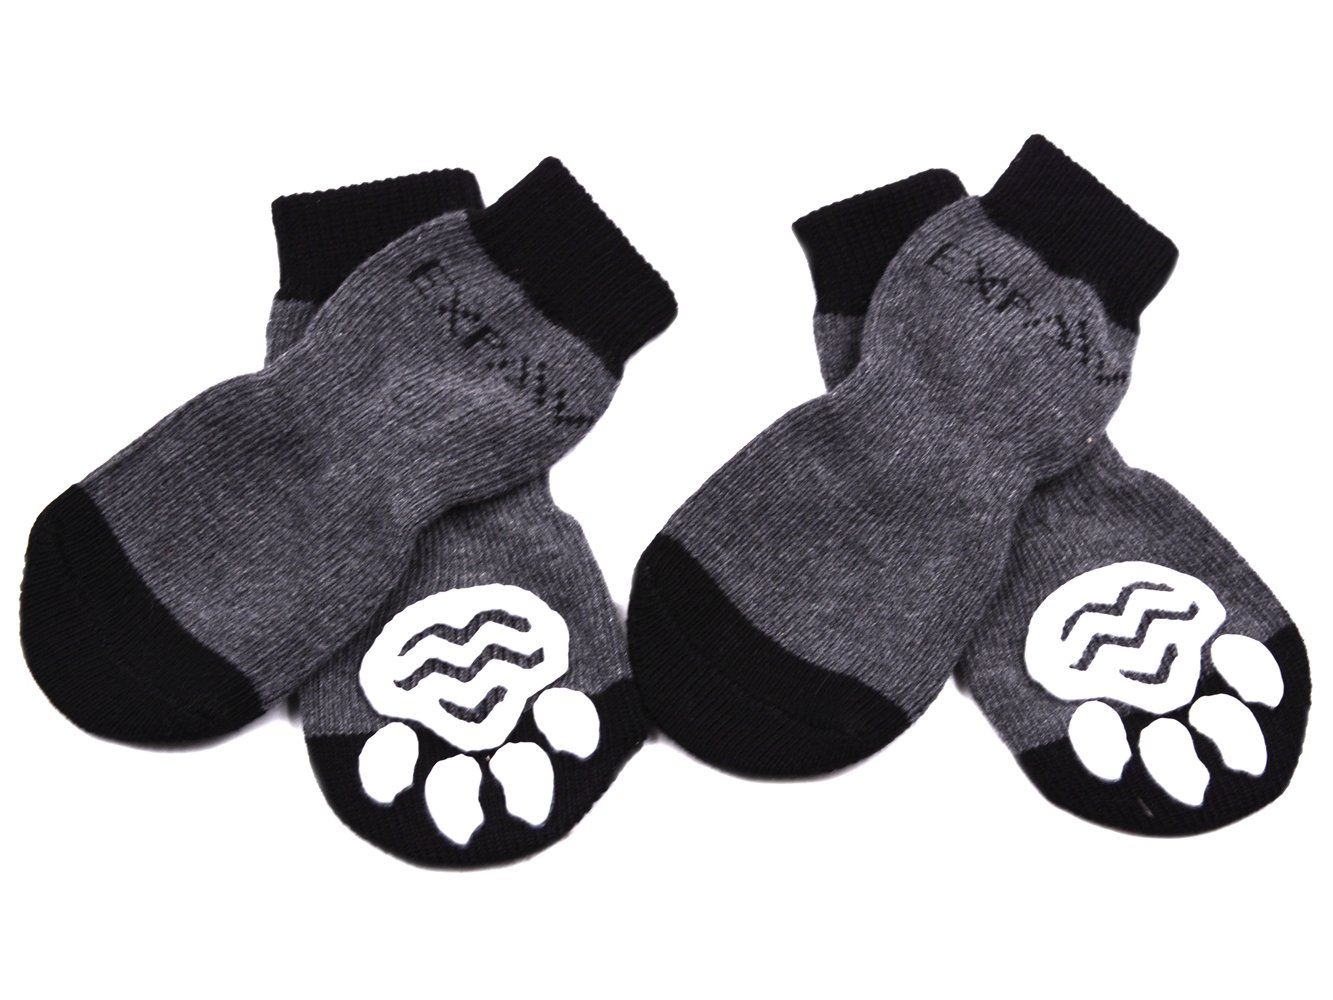 EXPAWLORER Dog Socks Traction Control Anti-Slip for Hardwood Floor Indoor Wear, Paw Protection Grey by EXPAWLORER